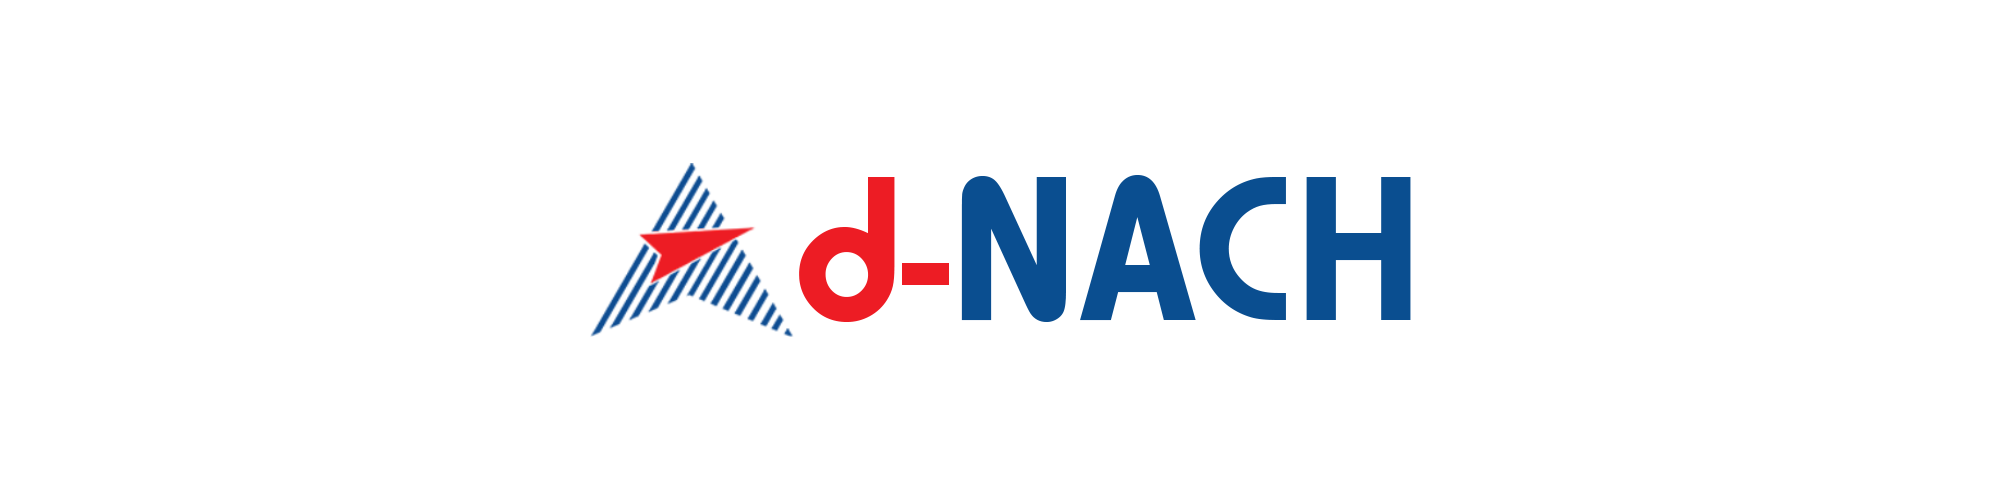 Ad-NACH (National Automated Clearing House)